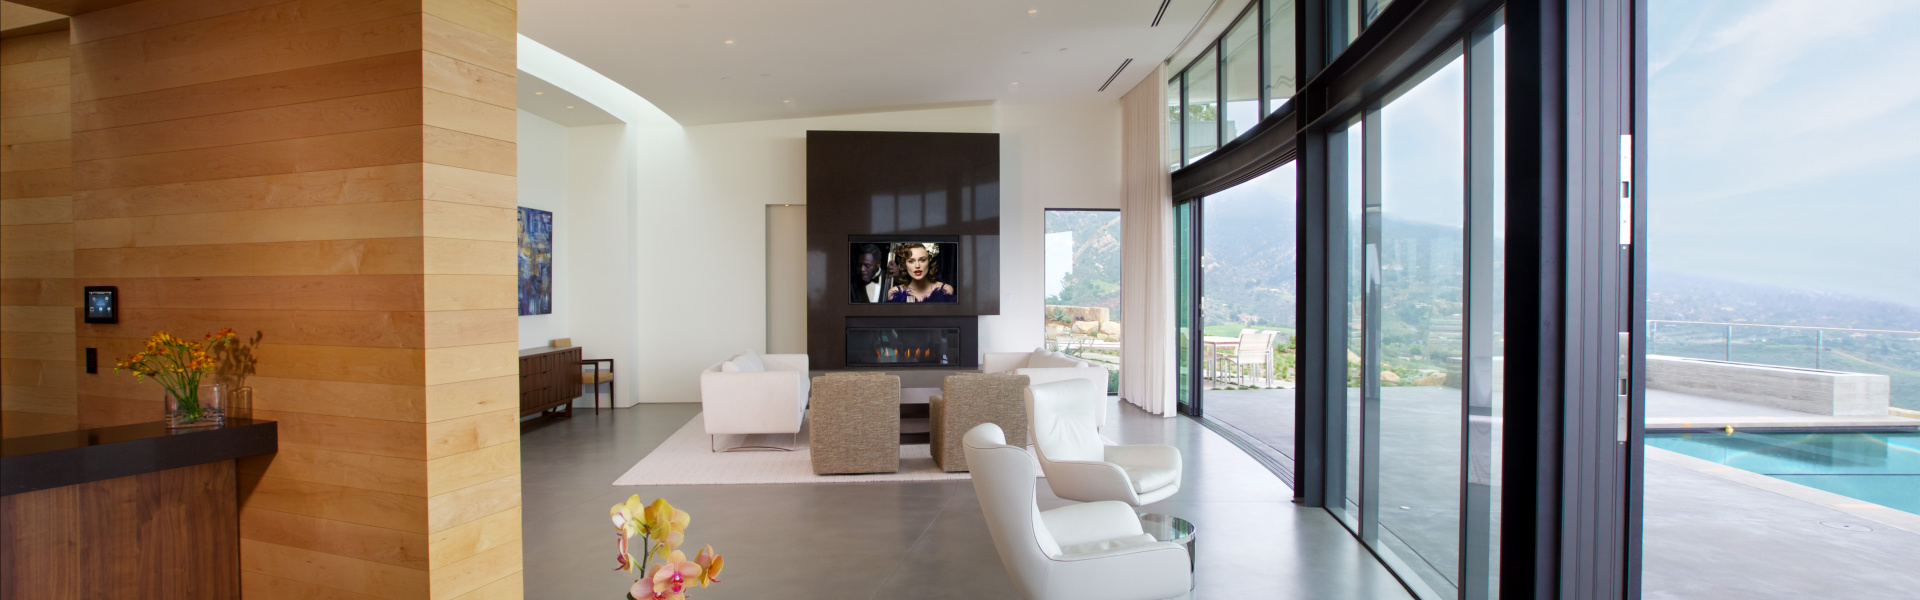 Smart Home Installation By Hi Fi Club For Santa Barbara